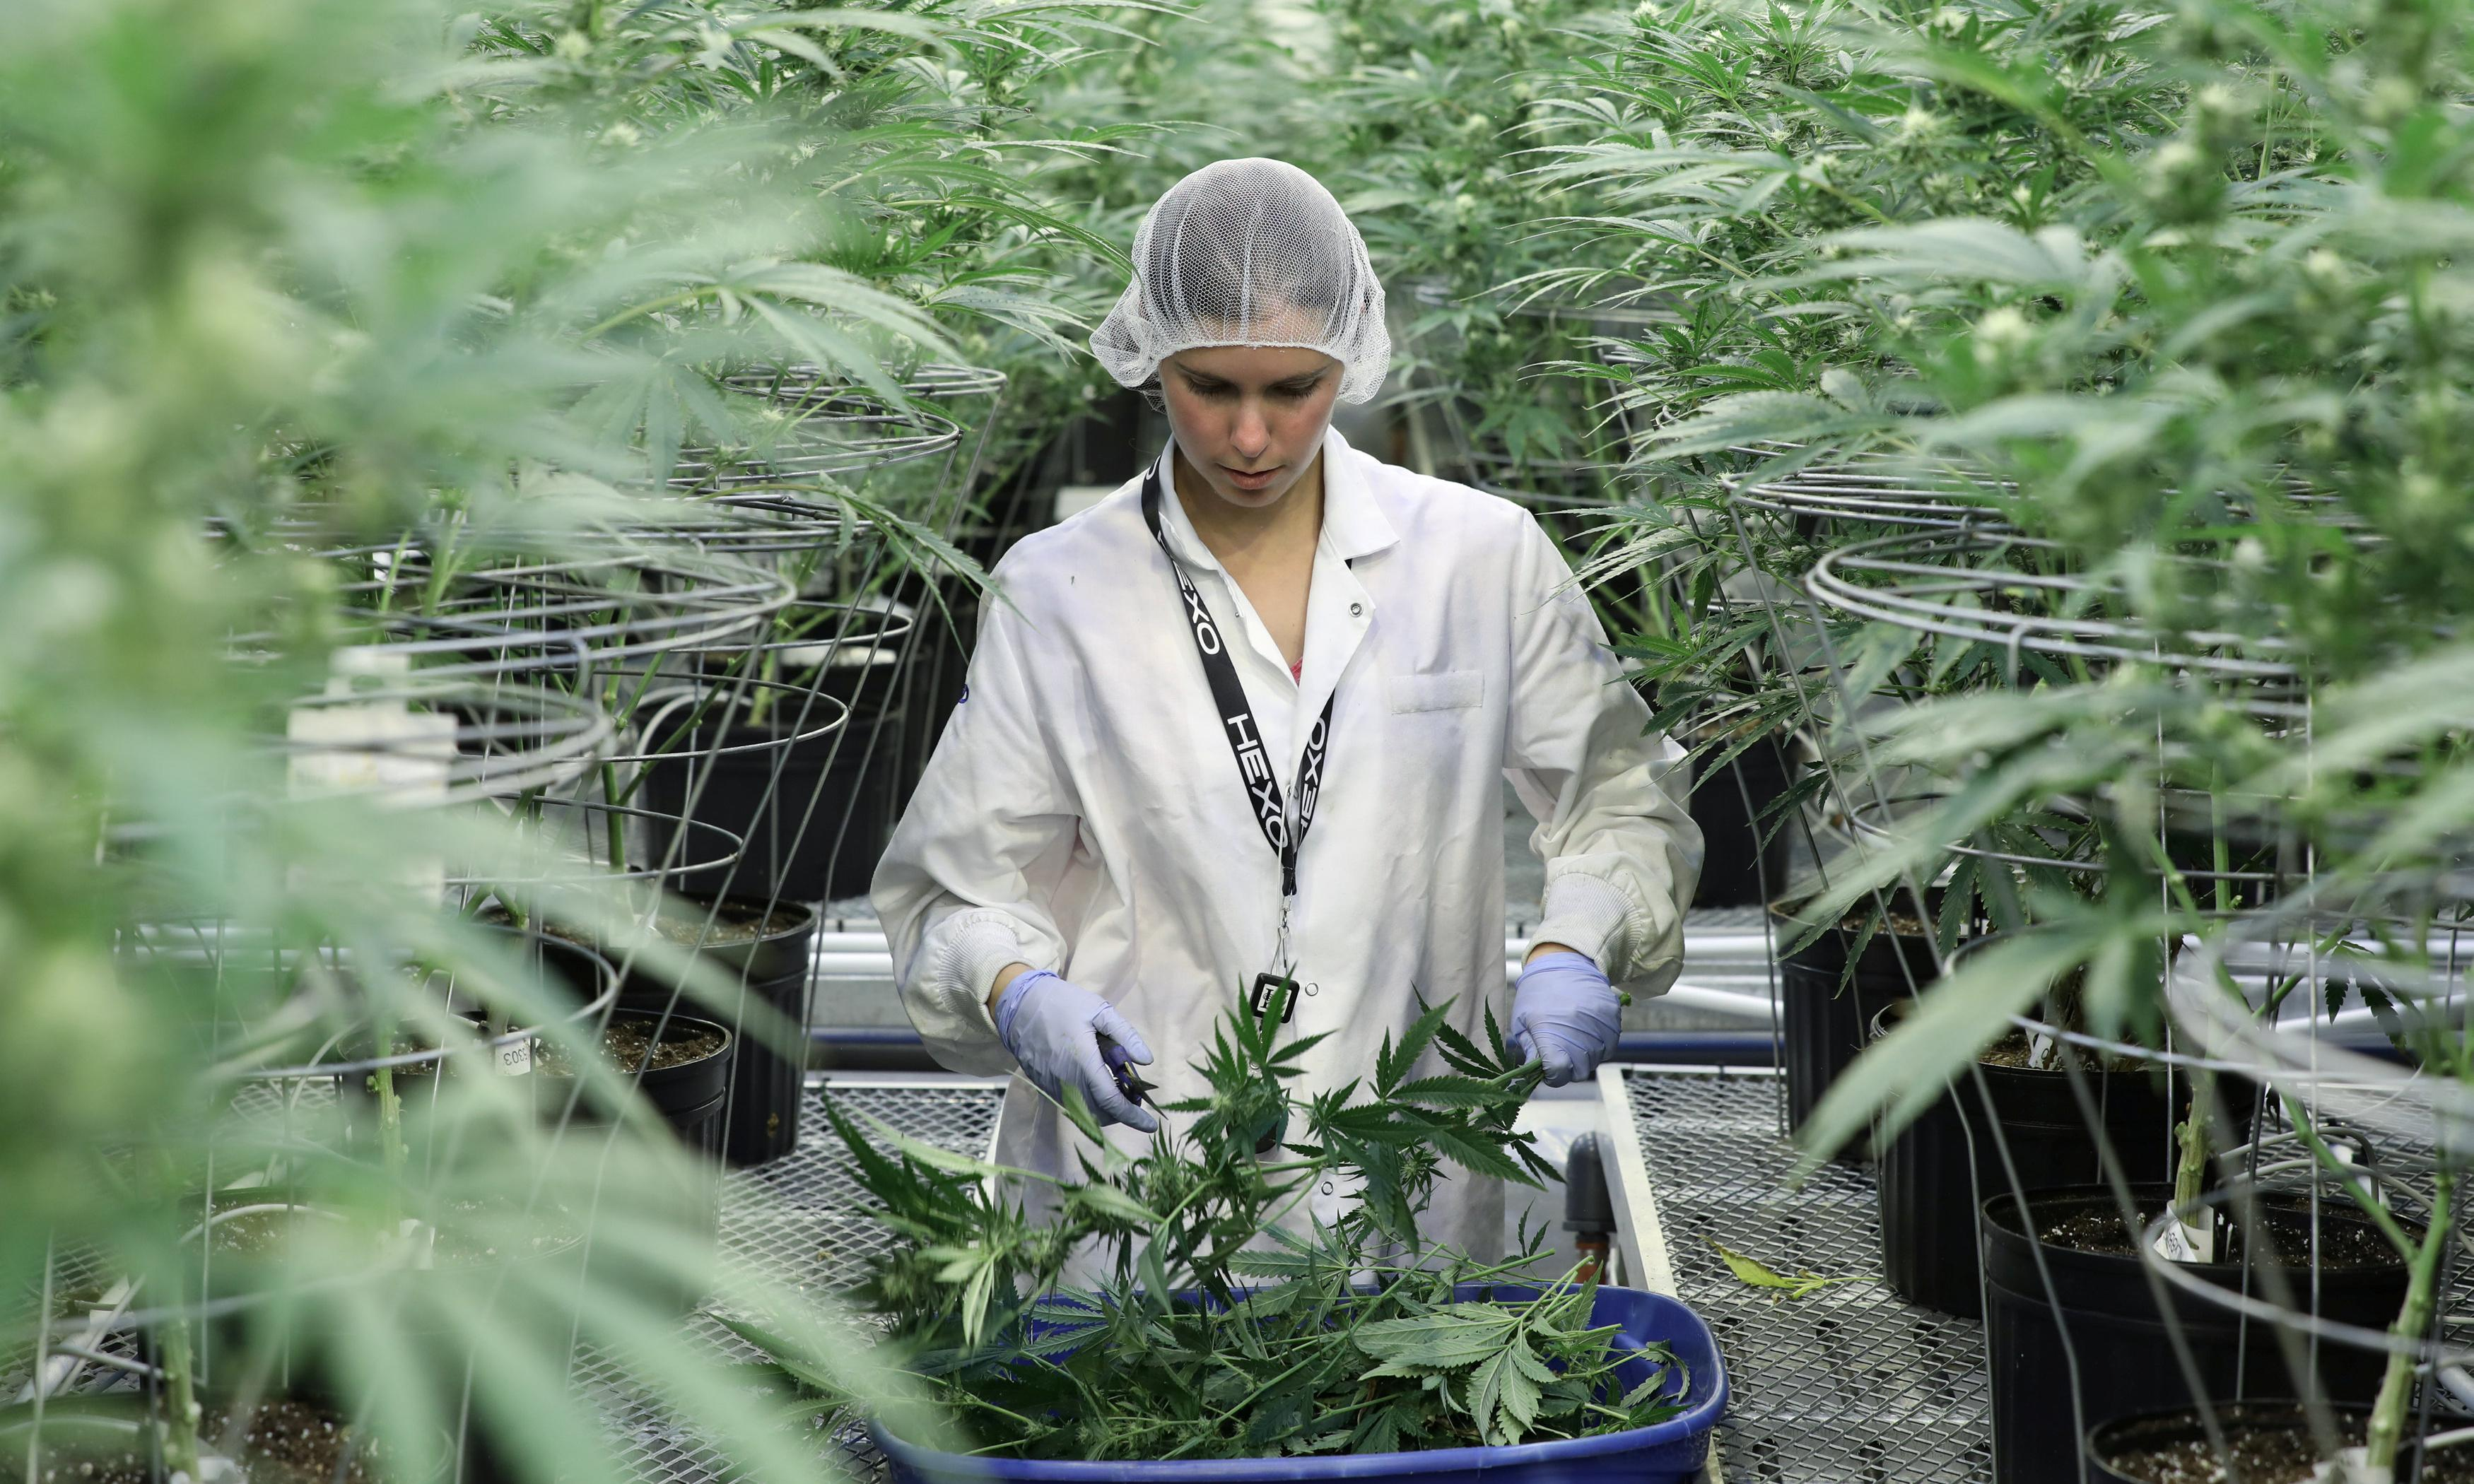 High stakes: cannabis capitalists seek funds to drive drug trade